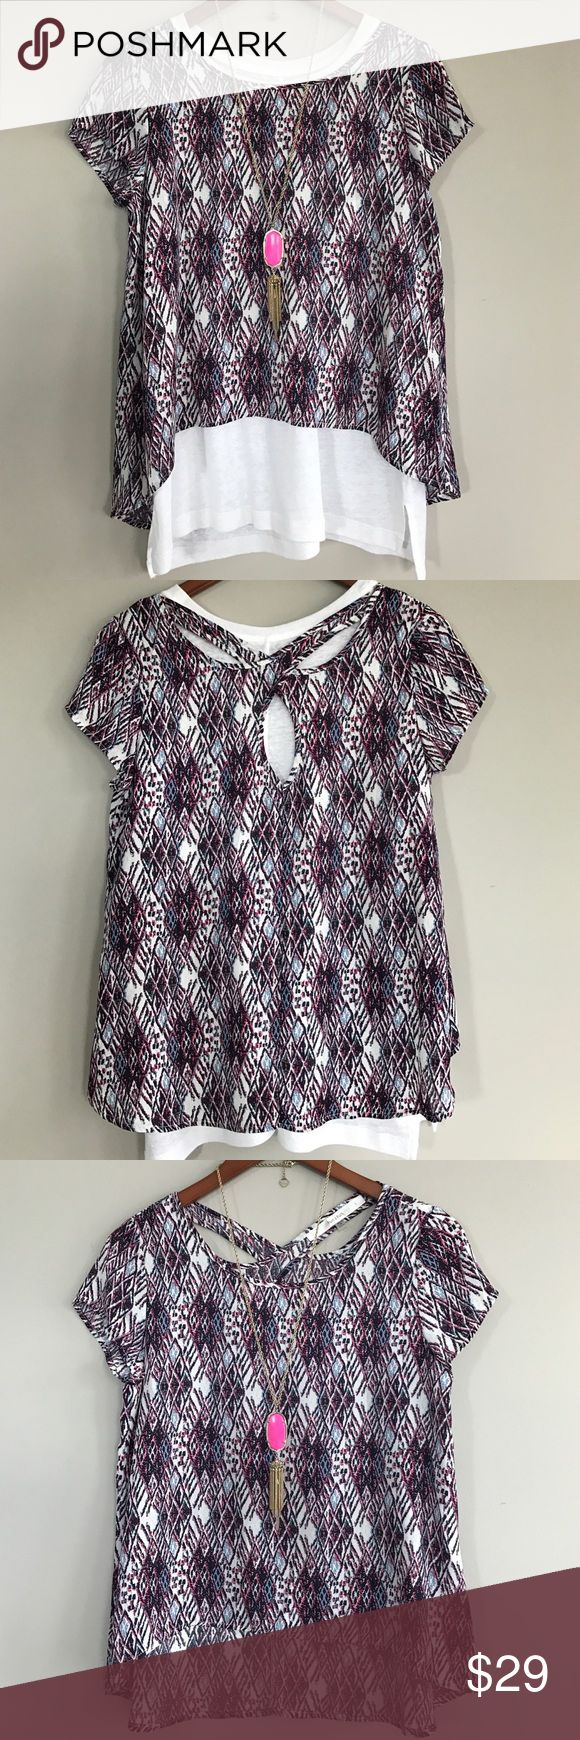 """Stitch Fix Fun 2 Fun cross back short sleeve top EUC, pink, blue and white print, in the first two photos I added a white tank (not included) to show cut outs, measurements taken laid flat: bust 18"""", length in front 20"""", back 25"""" from shoulder to hem Fun 2 Fun Tops"""